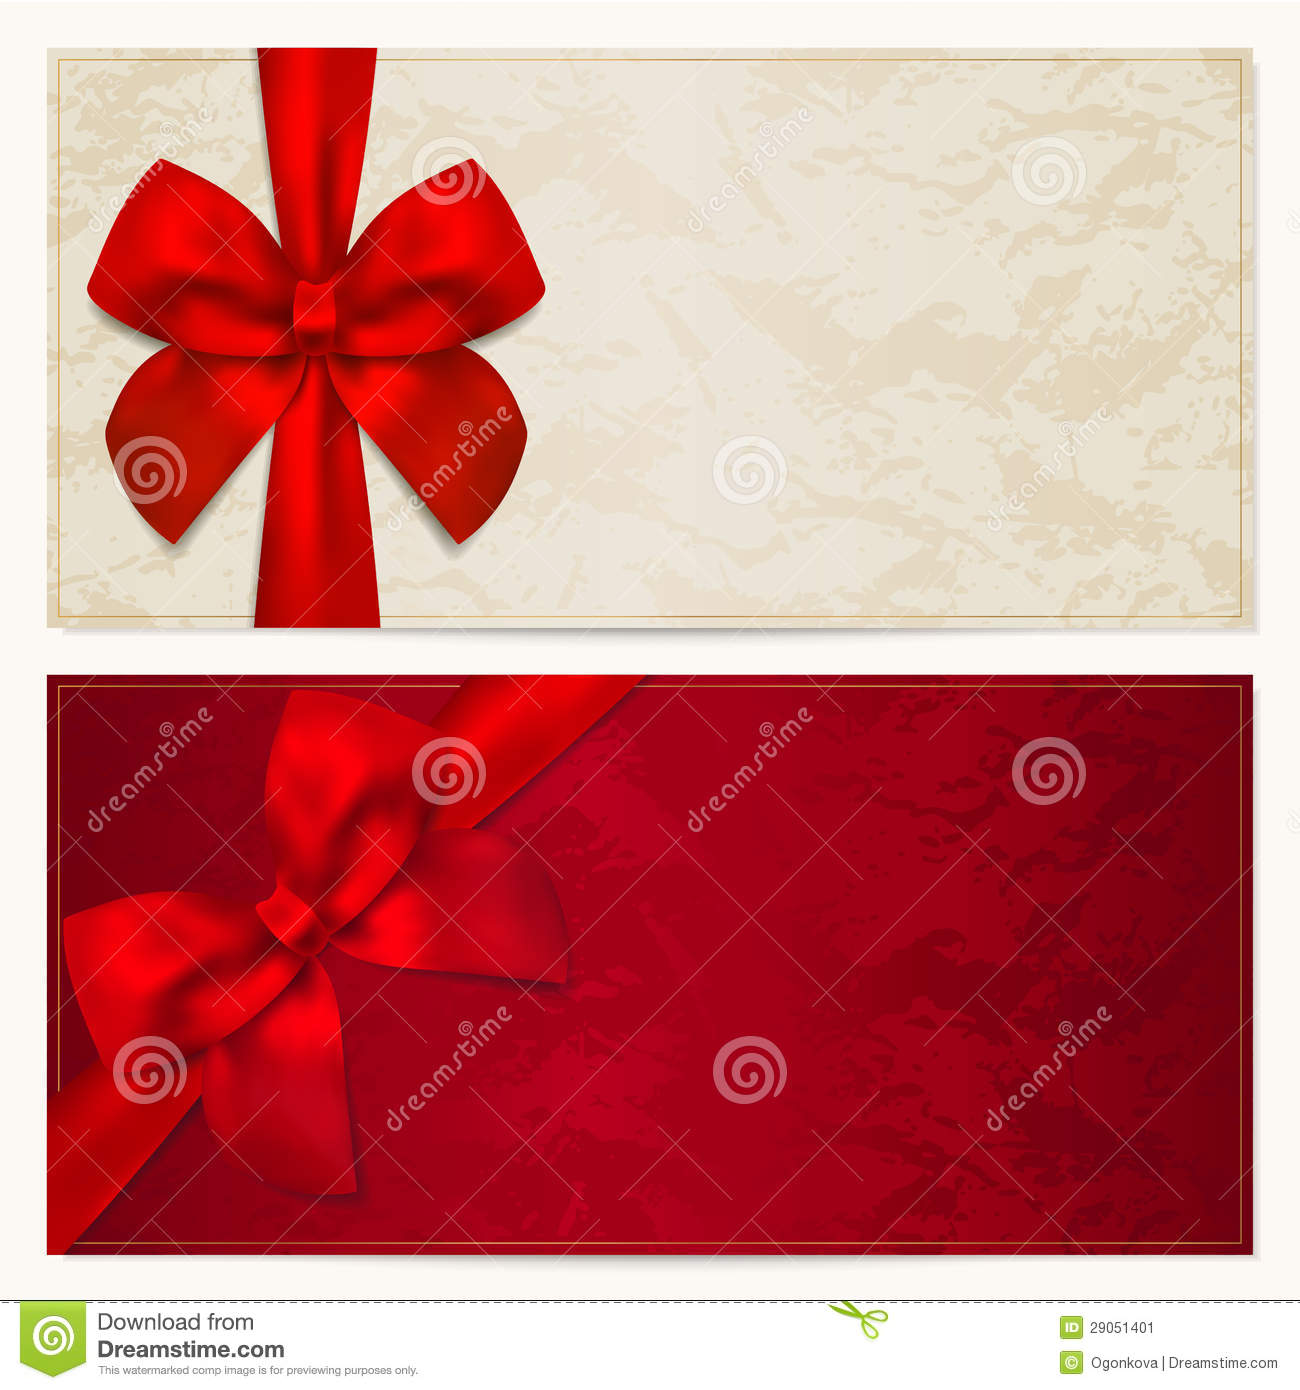 gift voucher    coupon template  red bow  ribbons  stock